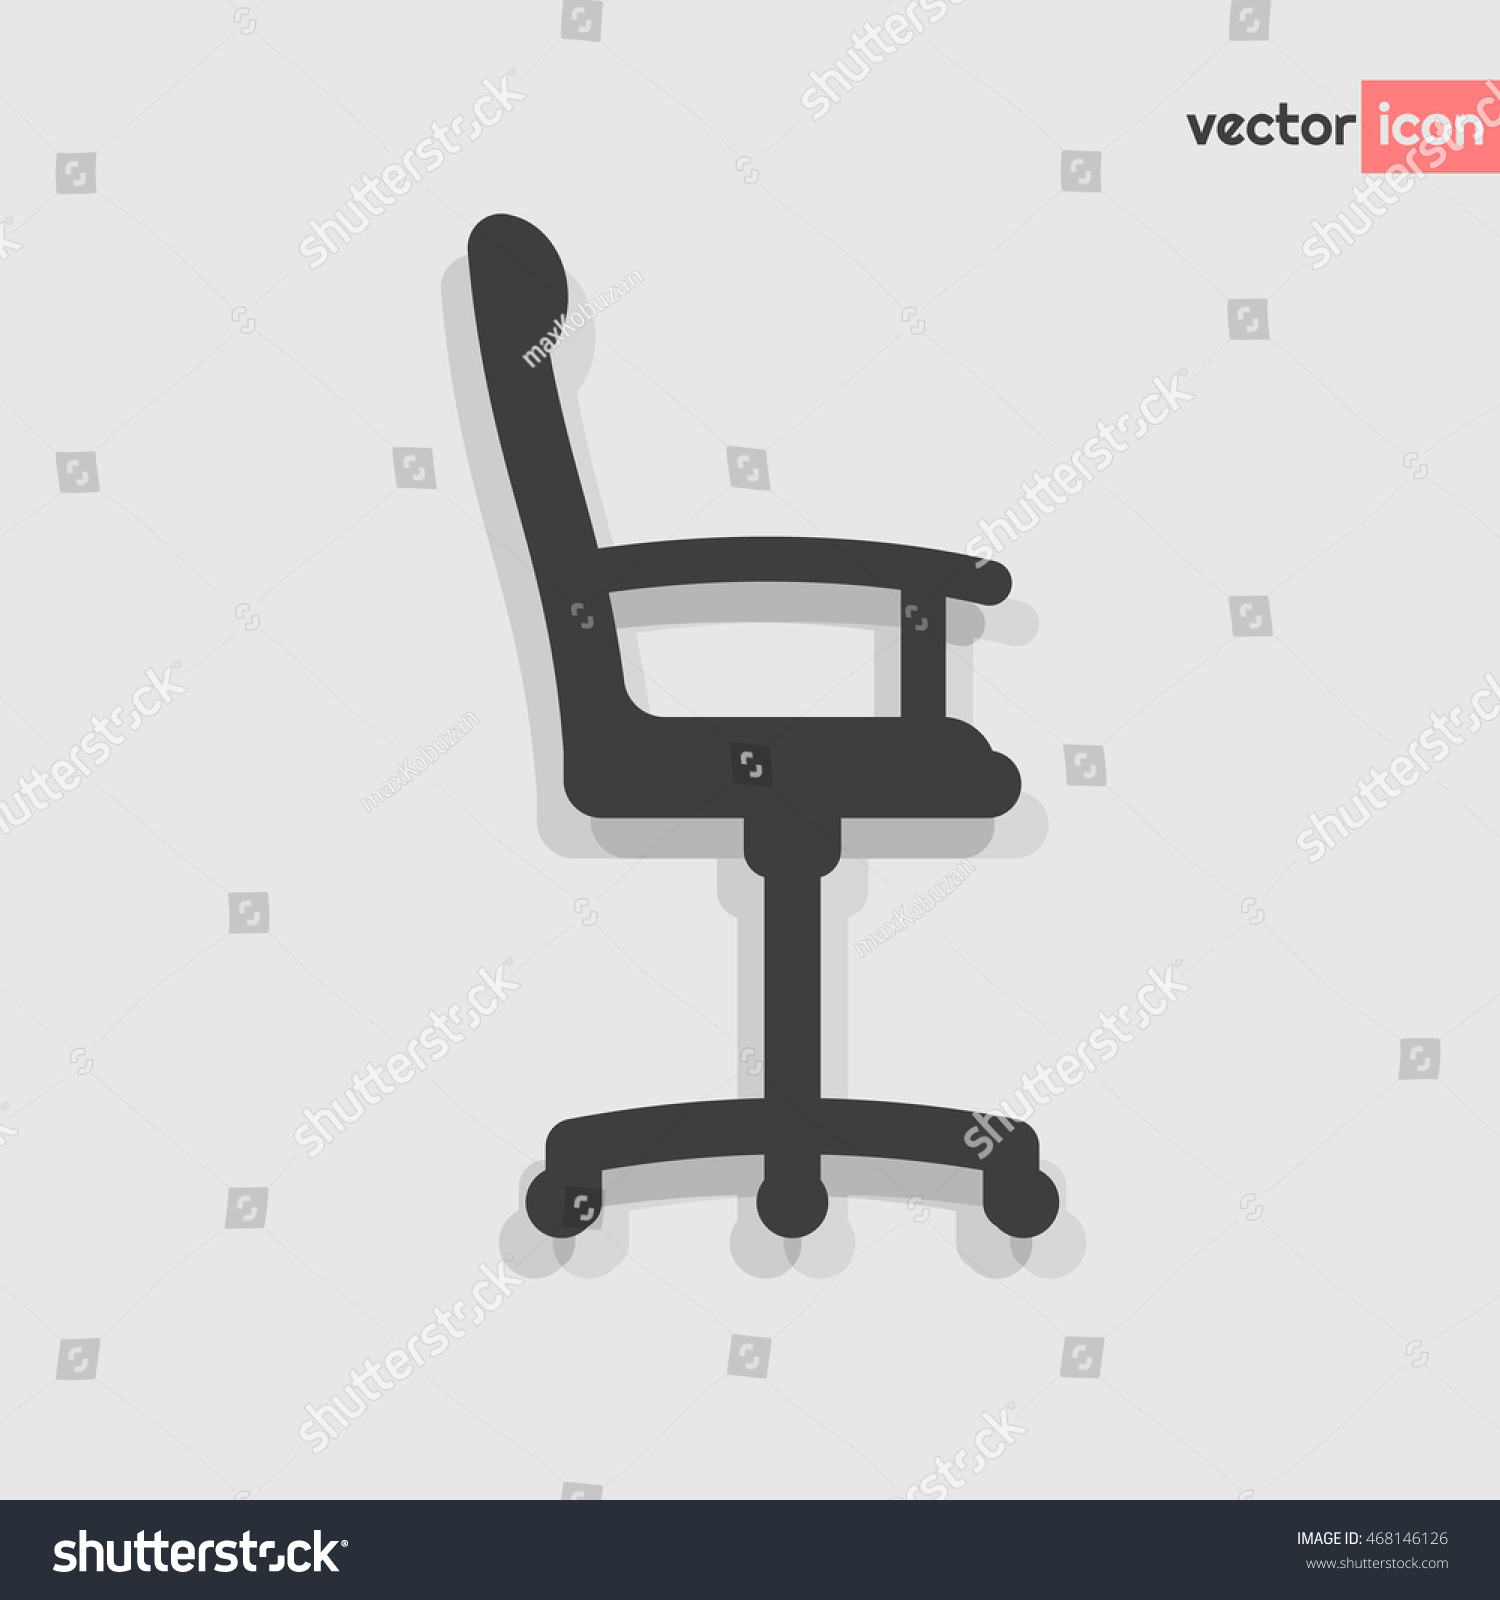 Grey Office Chair Vector Flat Icon Stock Vector (2018) 468146126 ... for office chair vector side view  61obs